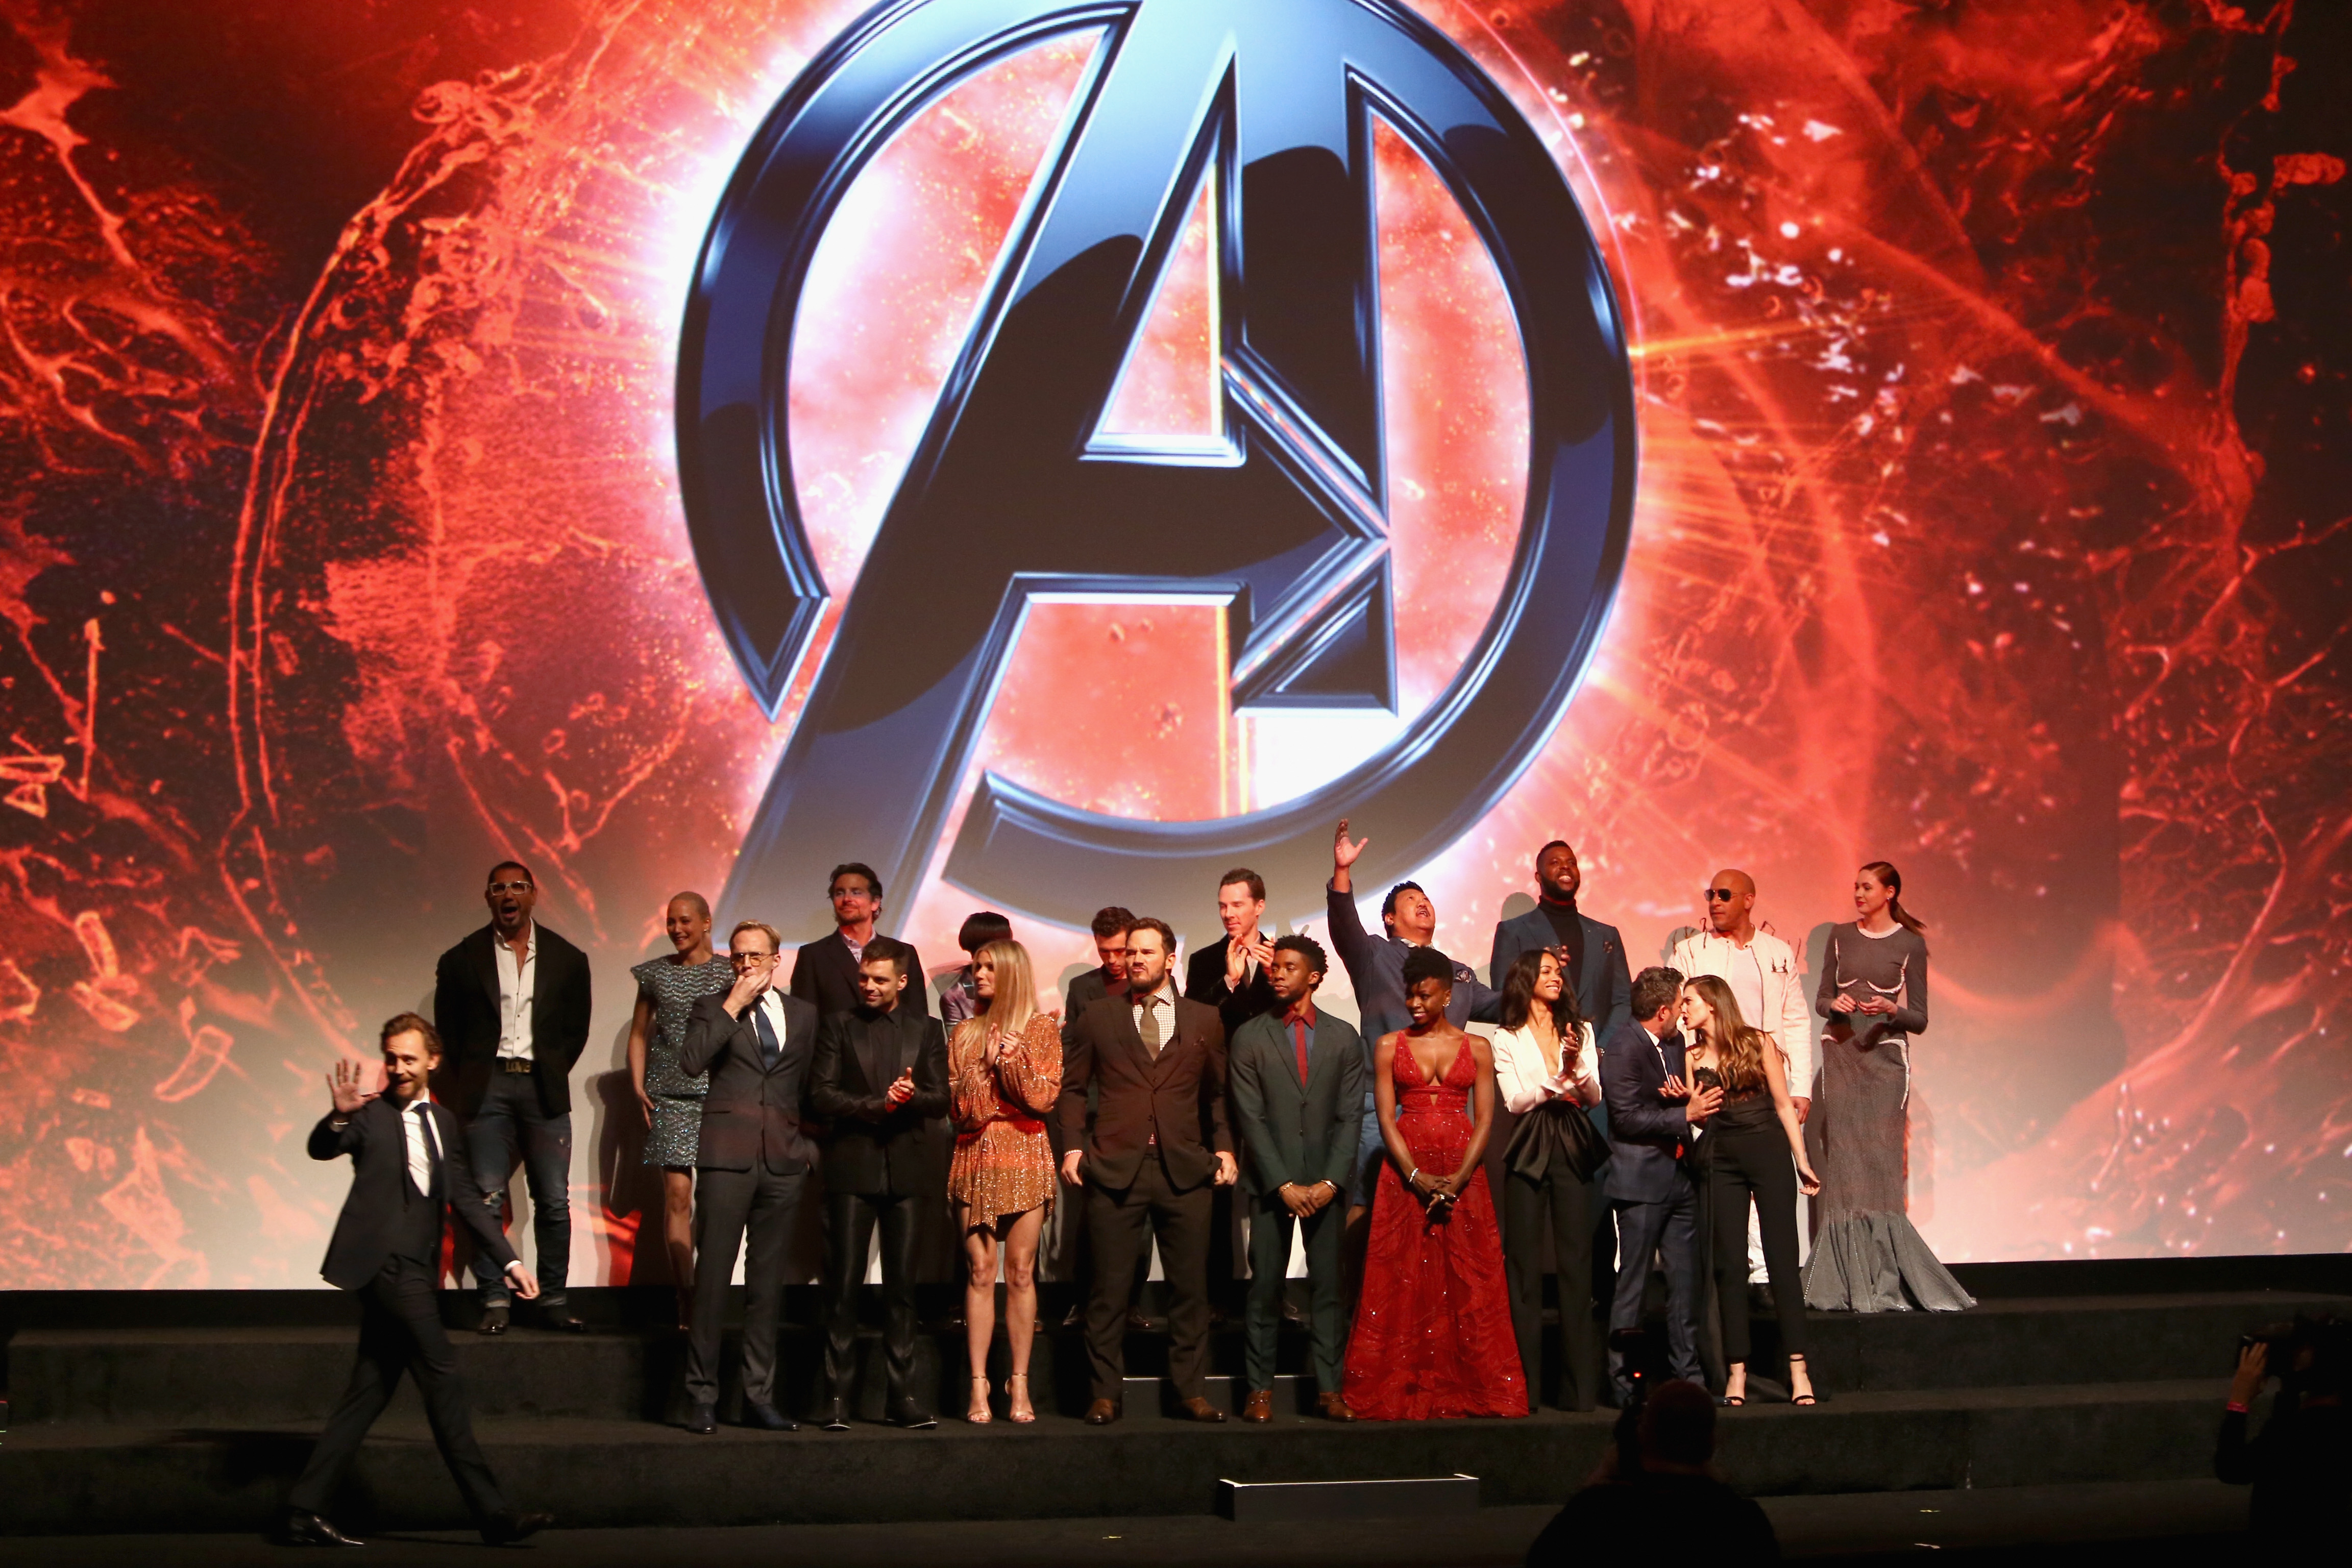 The cast of 'Avengers: Infinity War' (Source: Getty Images)